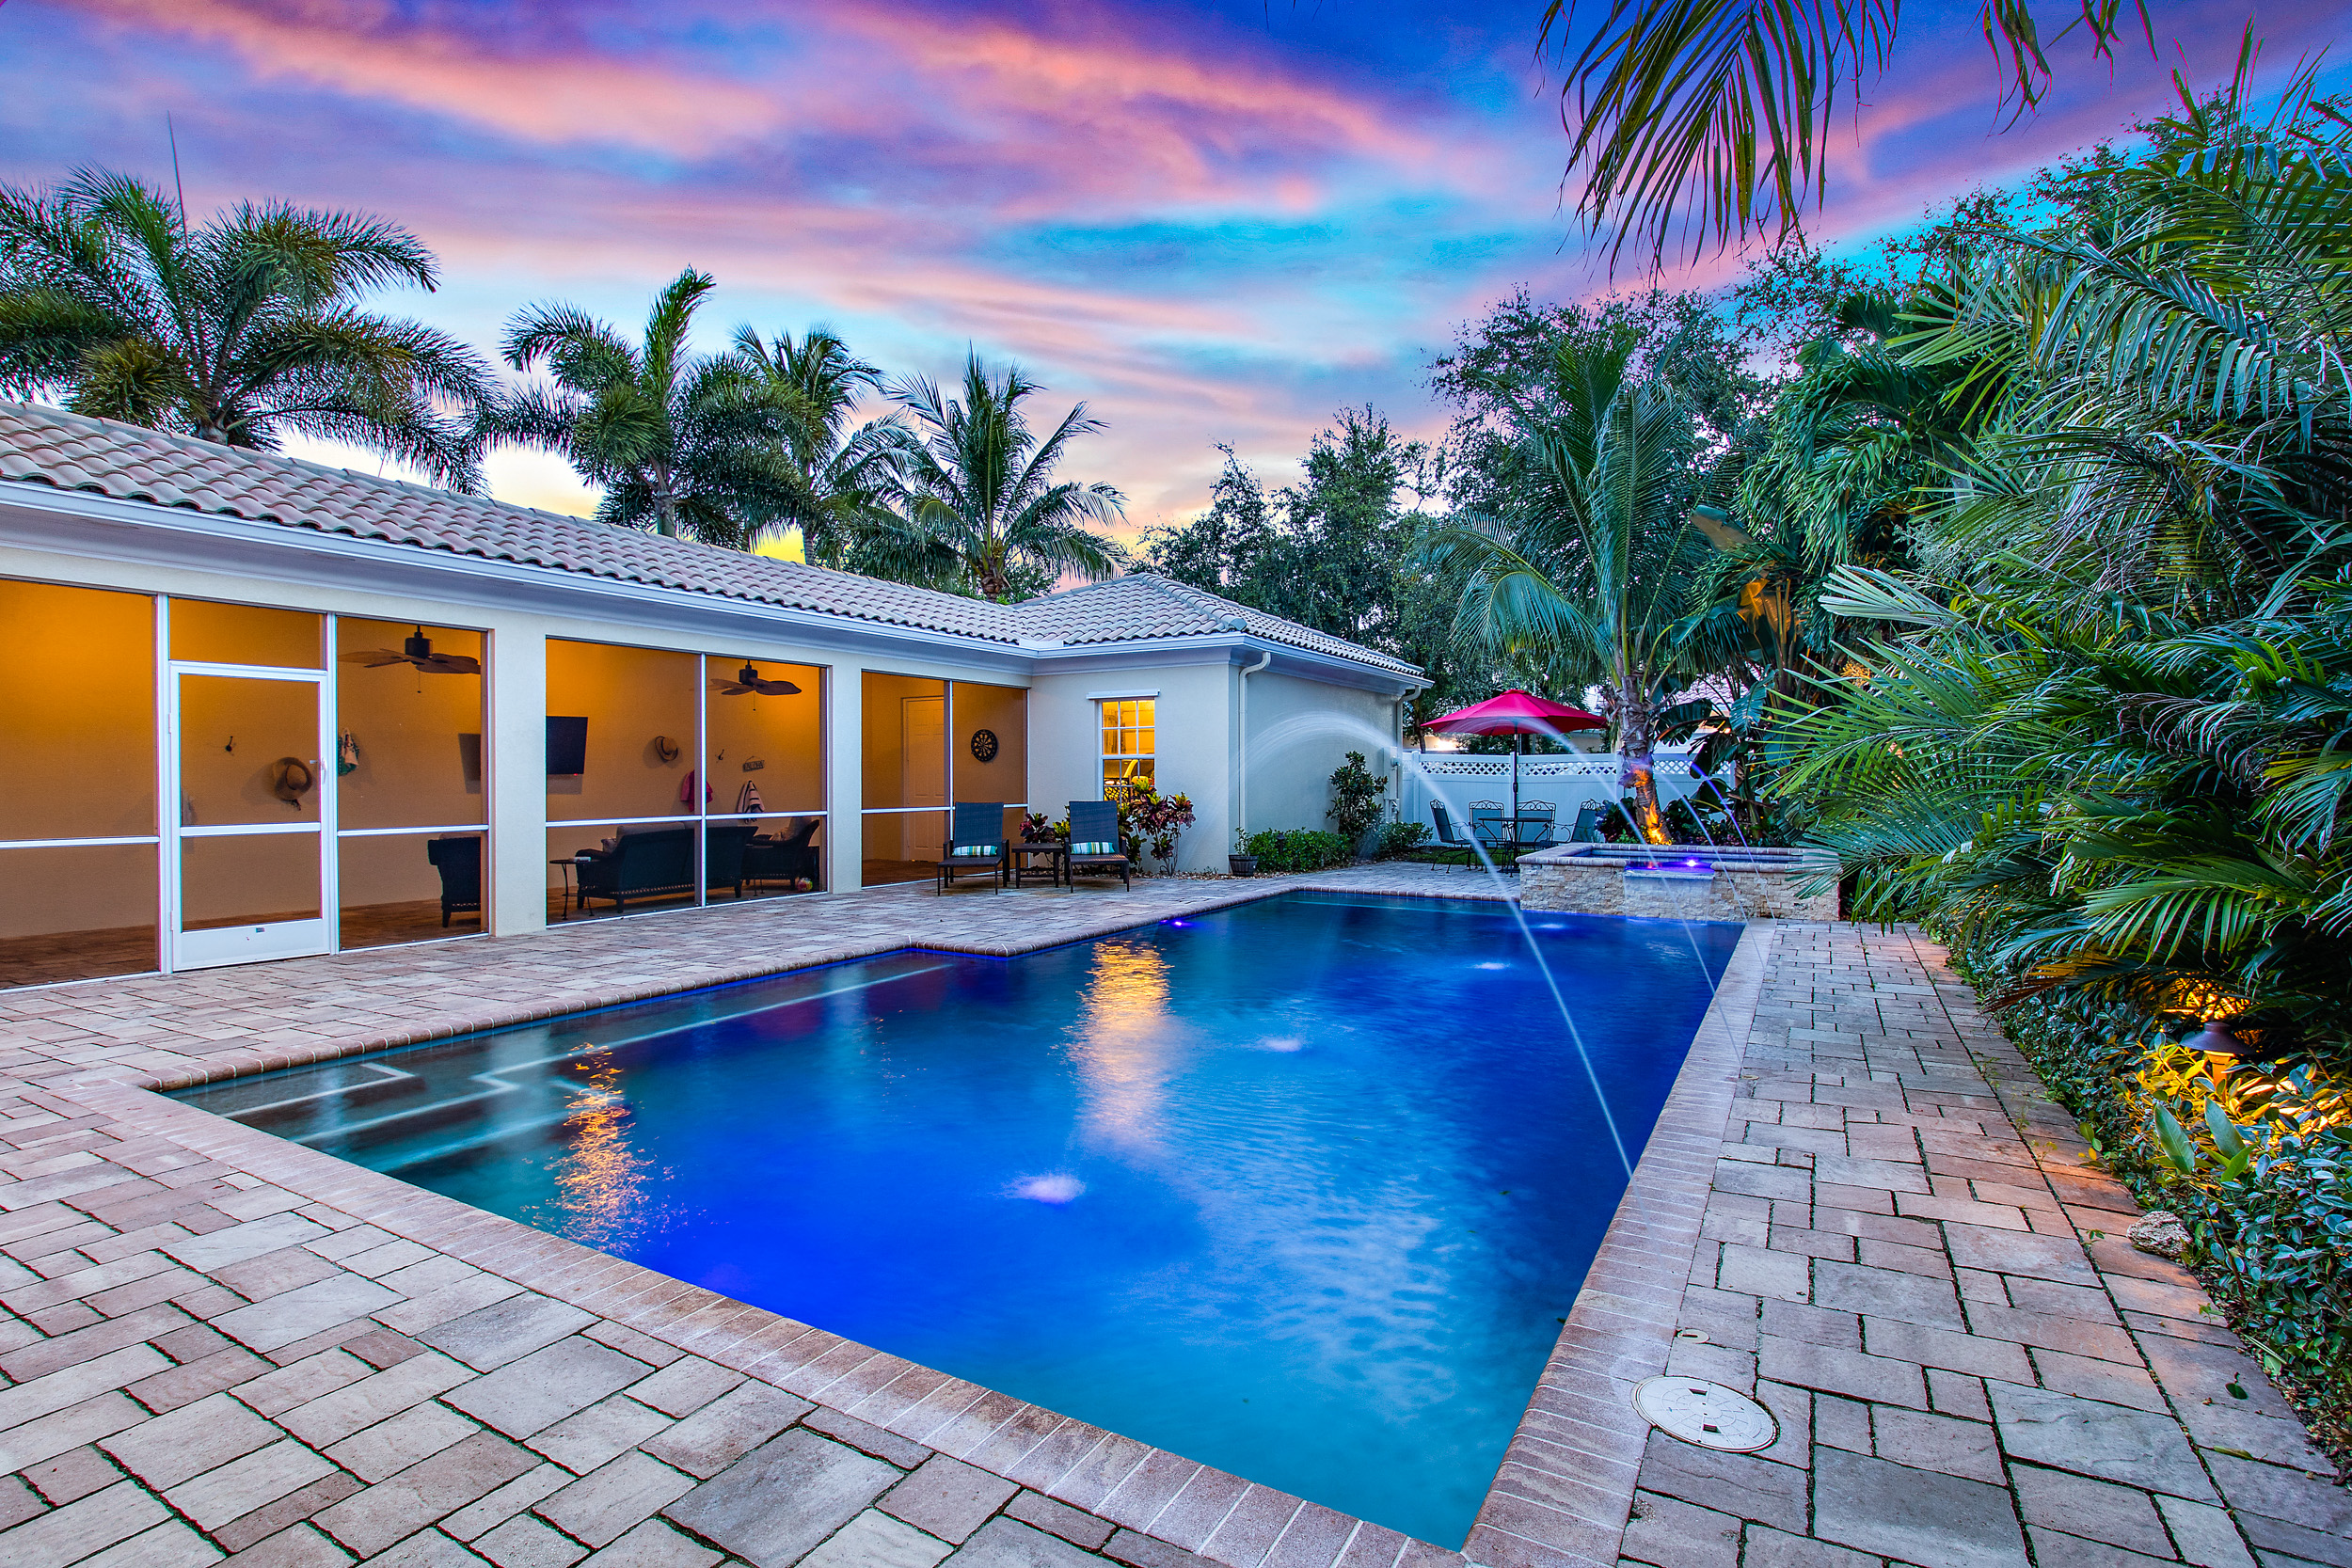 Search Abacoa, Jupiter Homes For Sale - Create a customized search for all homes for sale in Abacoa, Jupiter.